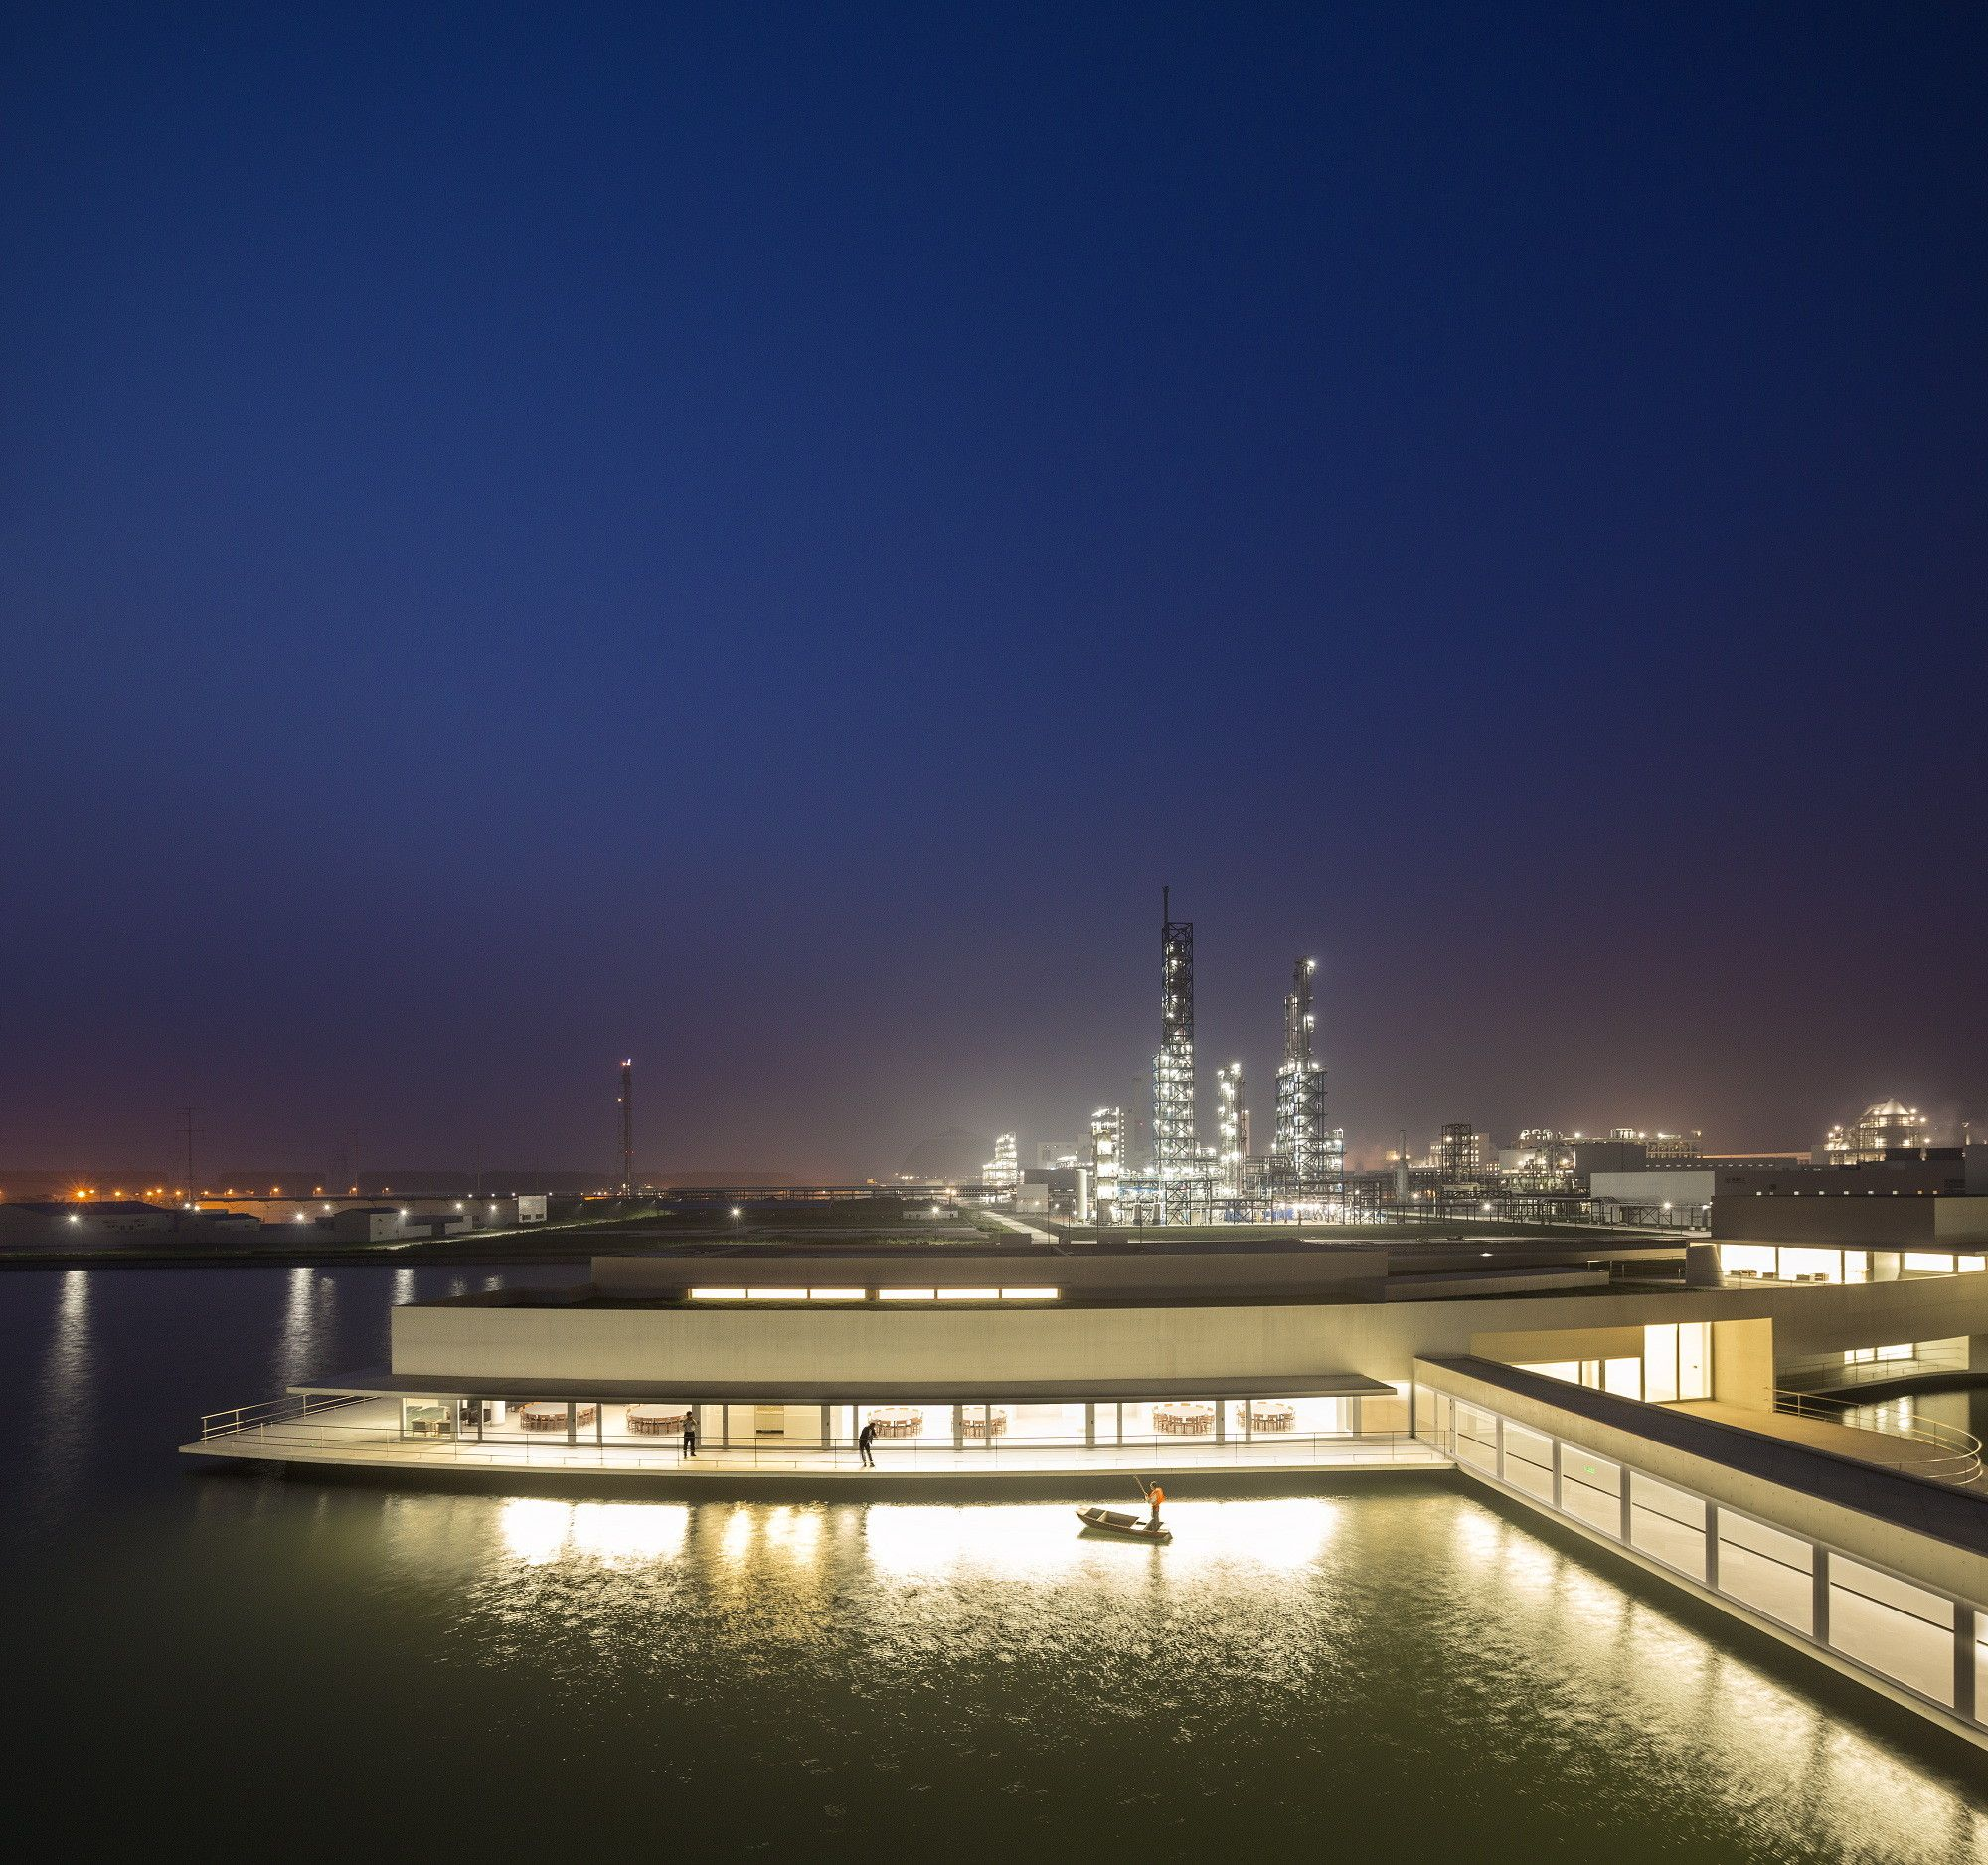 Gallery of The Building on the Water / Álvaro Siza + Carlos Castanheira - 44